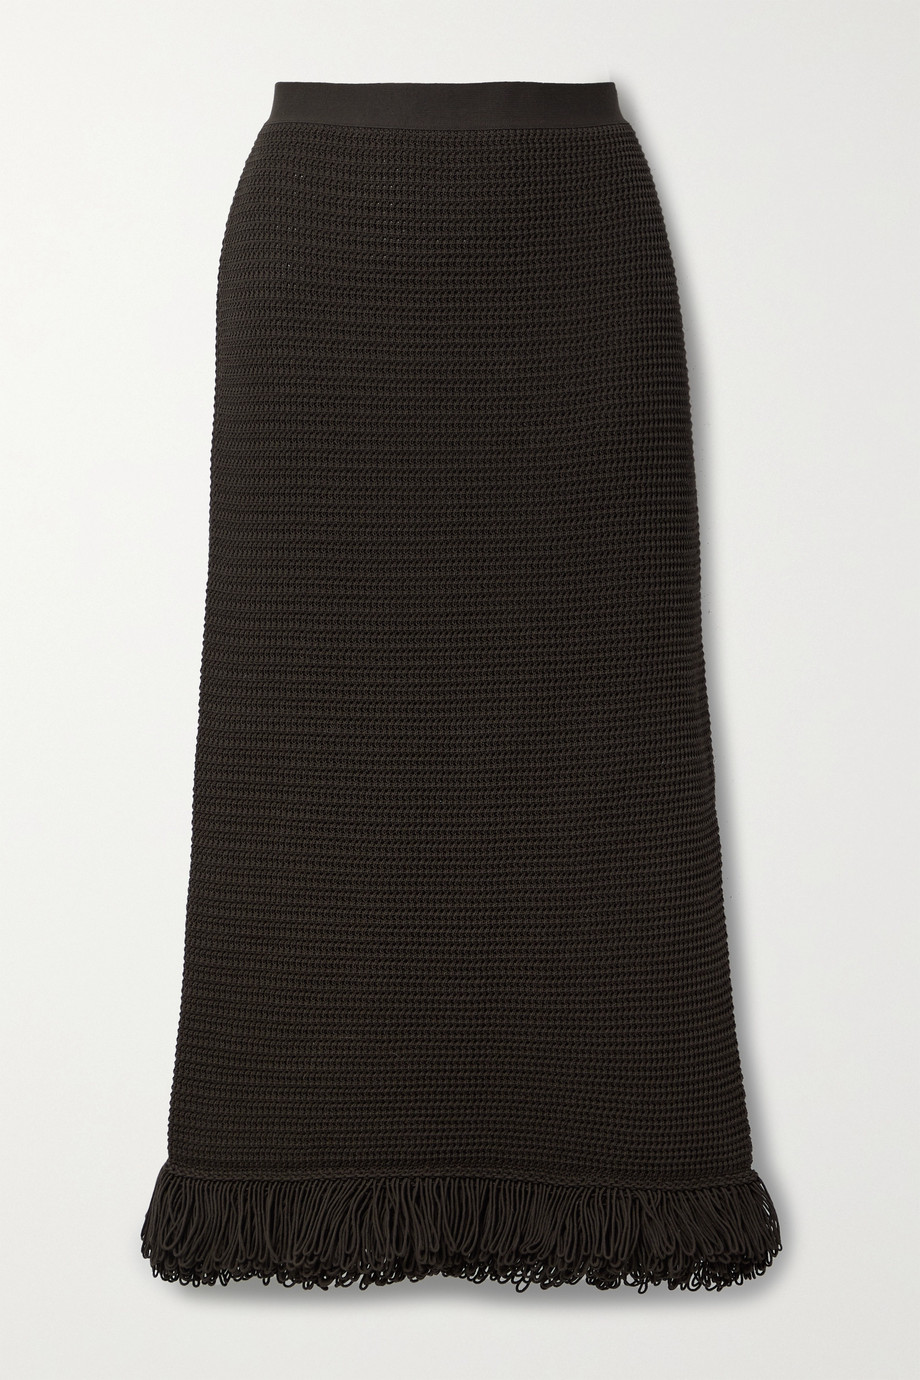 Bottega Veneta Fringed crocheted cotton midi skirt